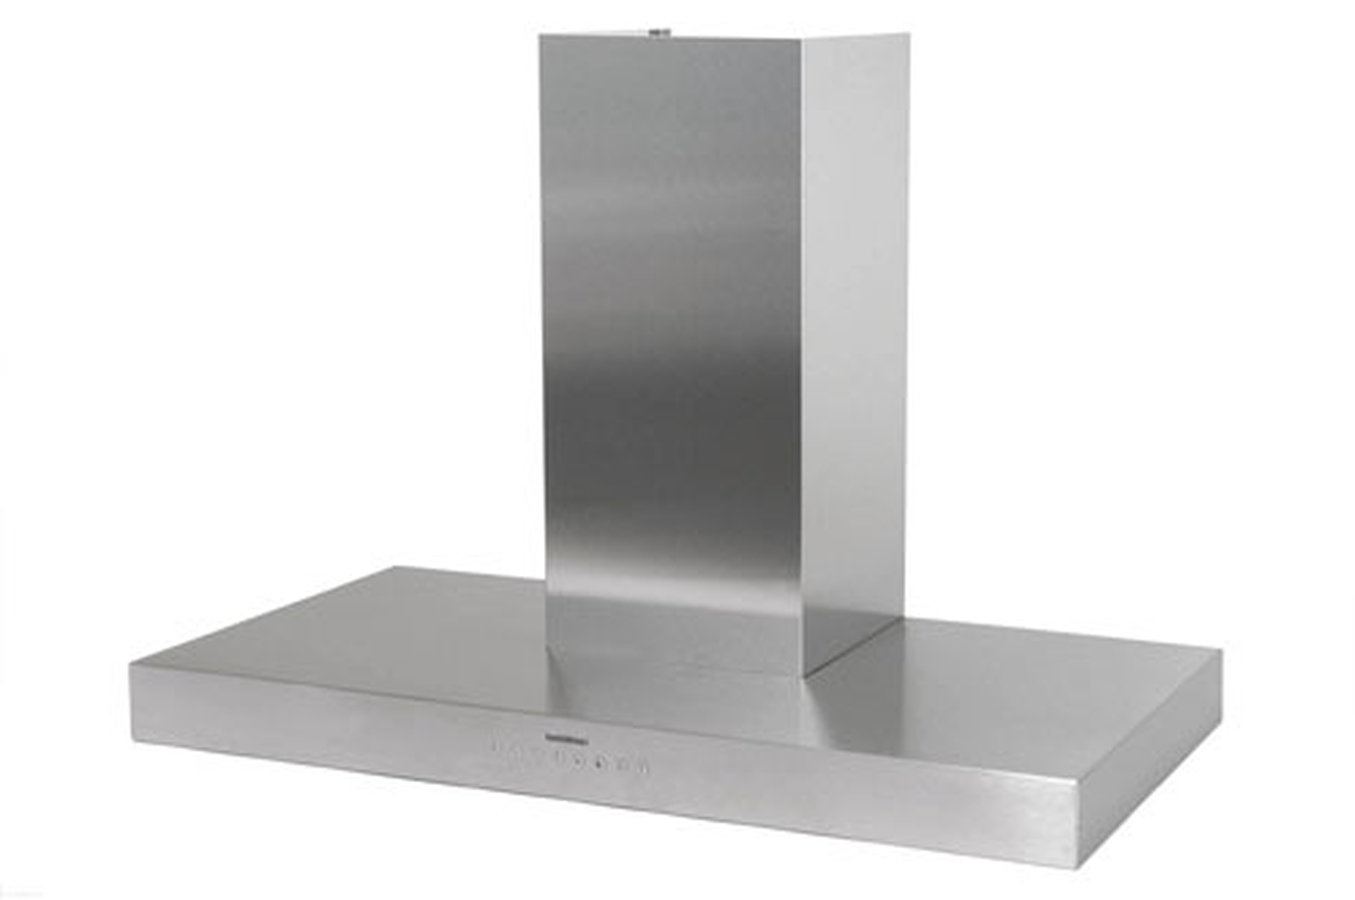 Hotte d corative murale gaggenau aw 265 190 inox for Installation hotte murale